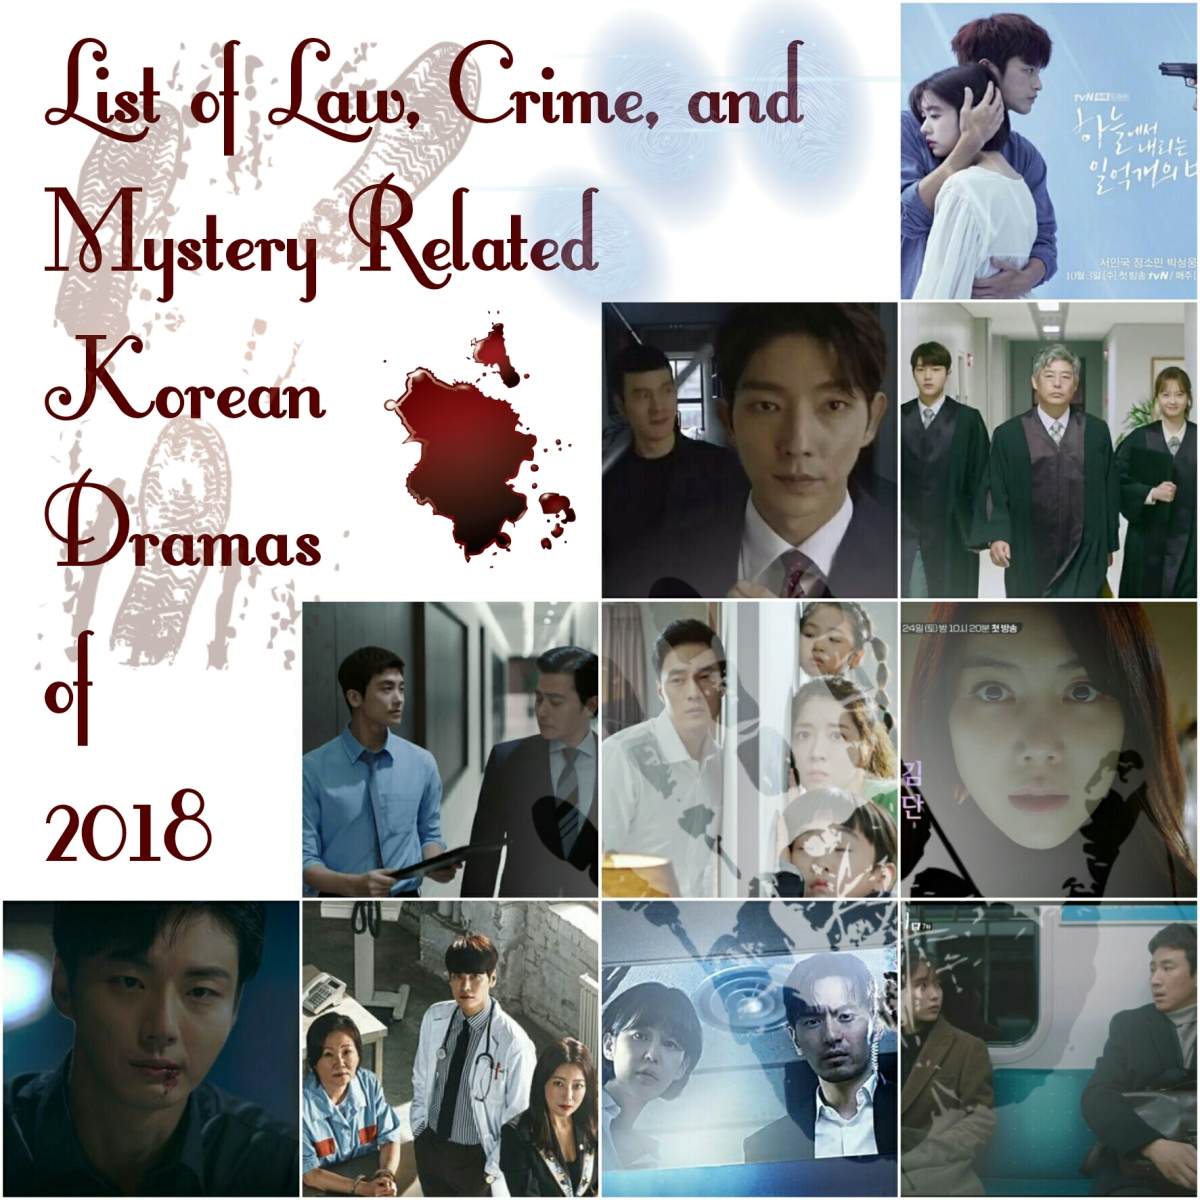 (27) List of Law, Crime, Mystery Related Korean Dramas of 2018